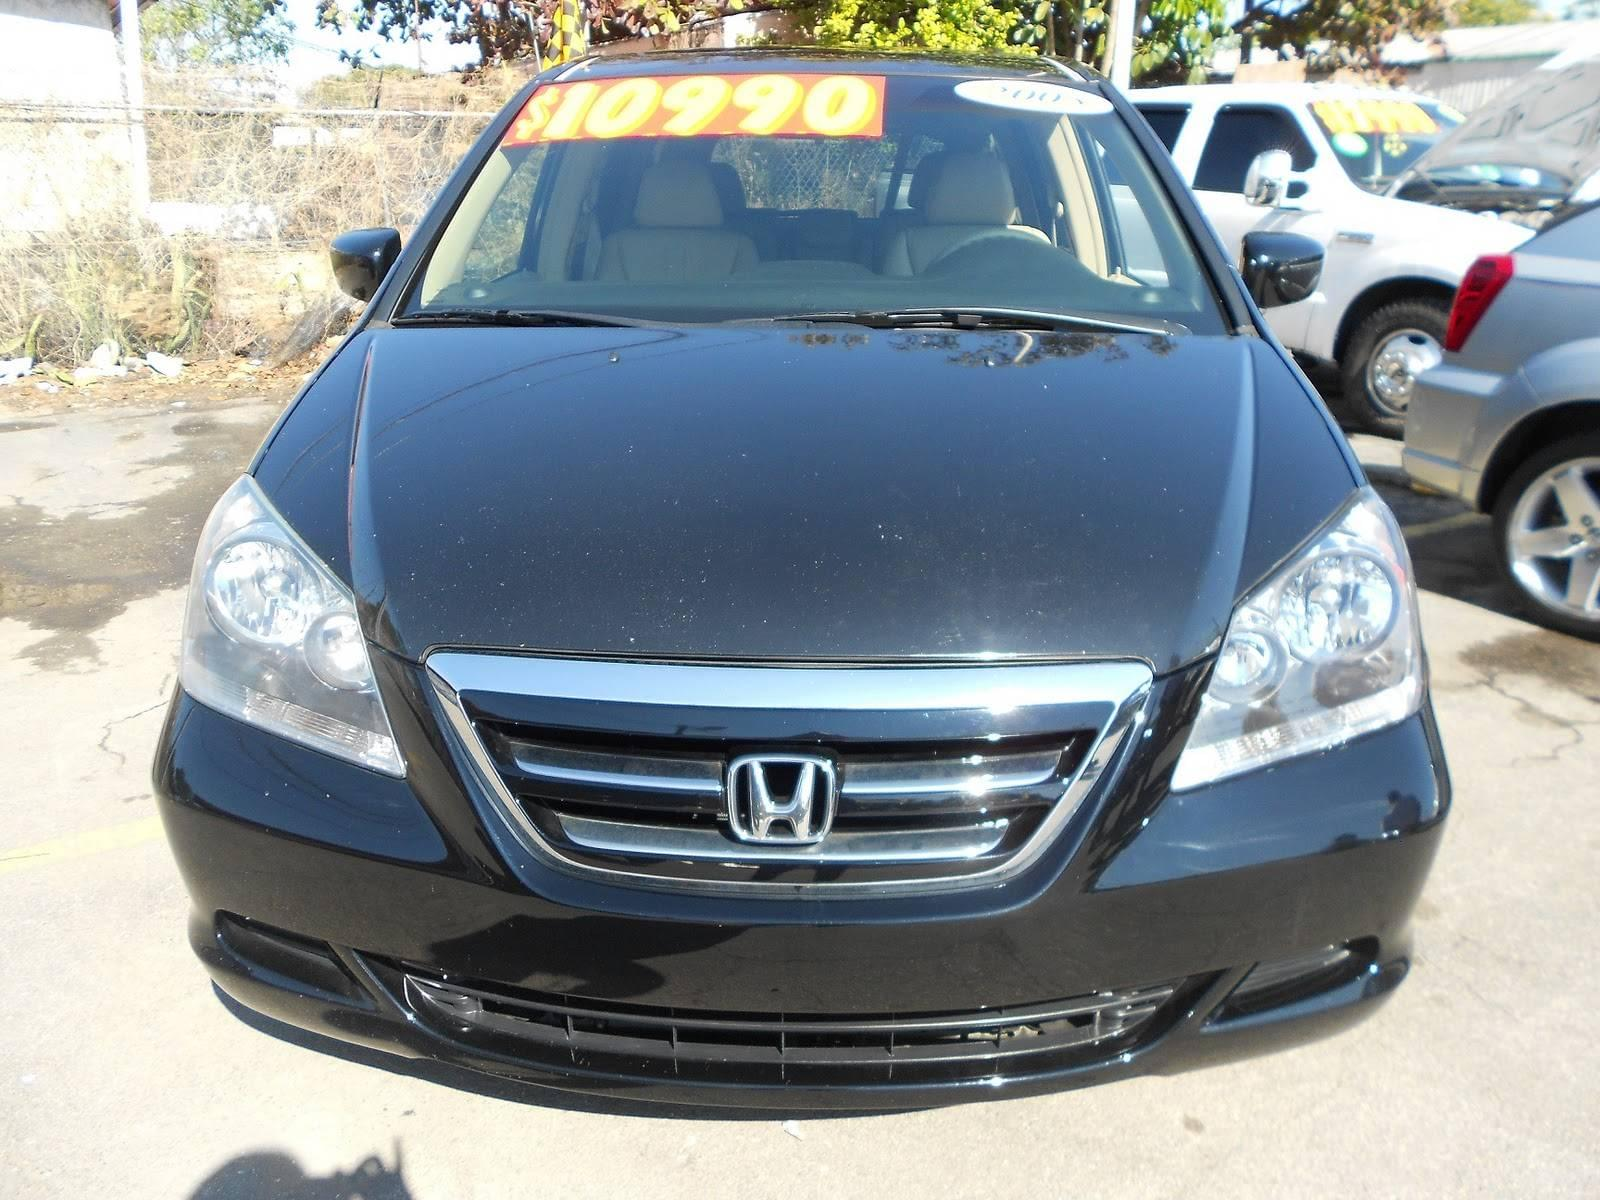 Find Used Cars Awesome How to Find A Cheap Used Car that Won T Leave You Stranded